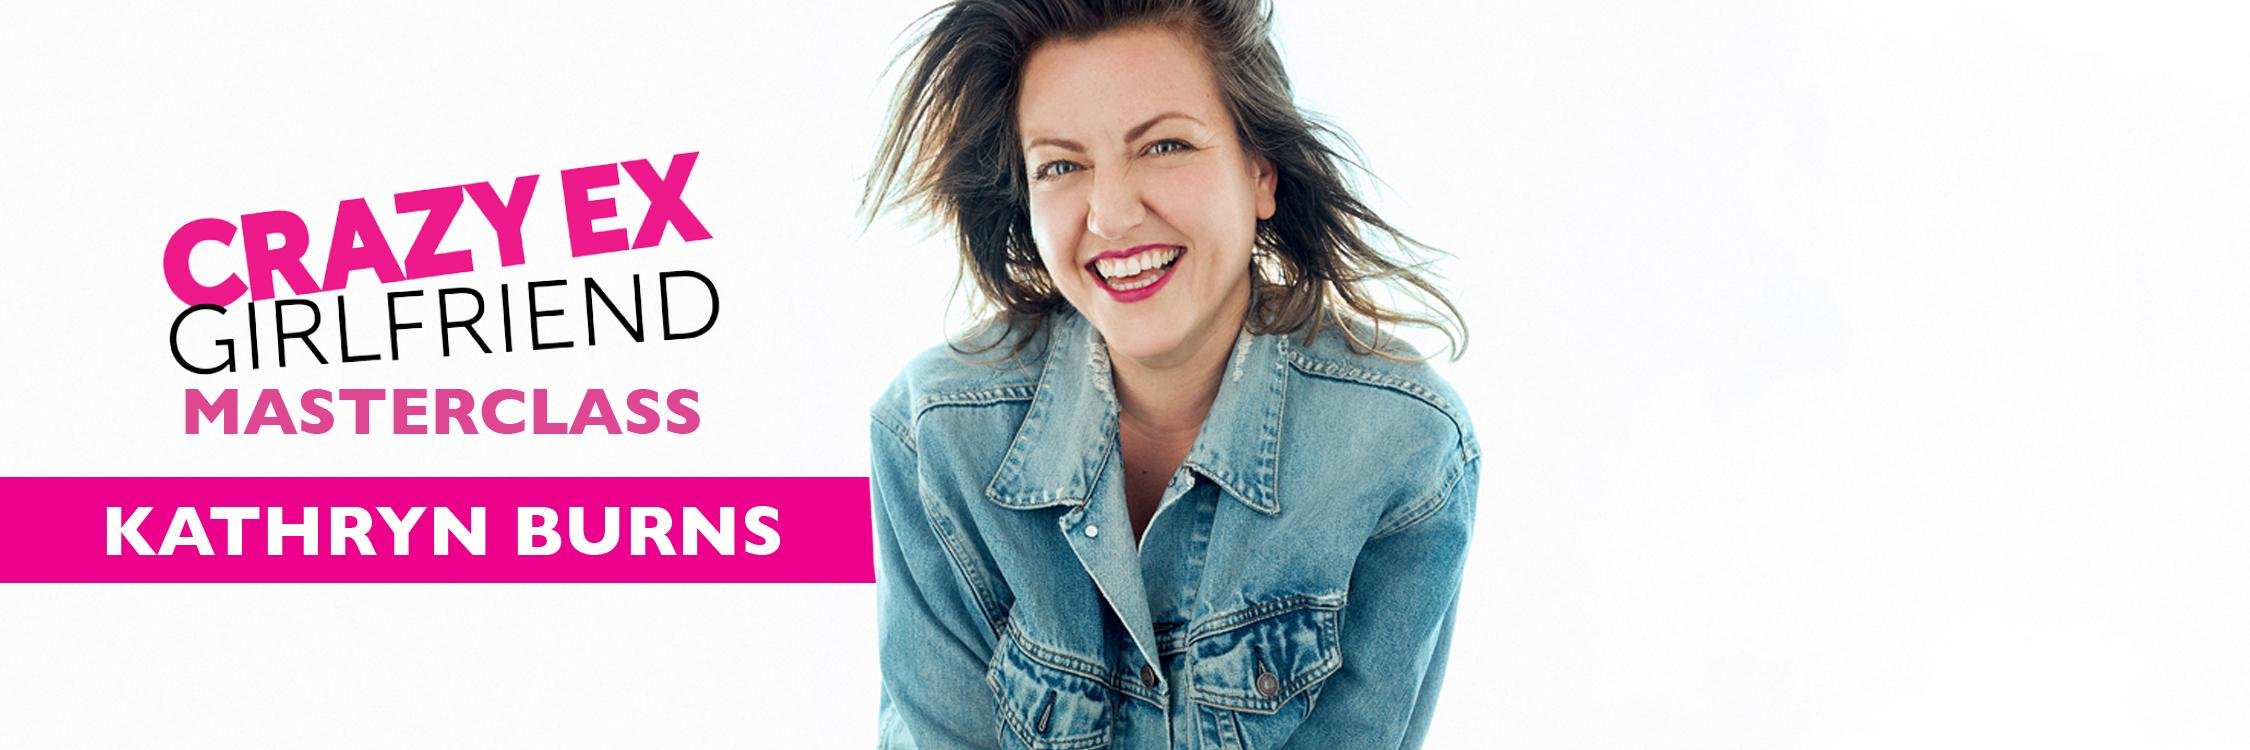 """Crazy Ex-Girlfriend"" Master Class with Kathryn Burns"